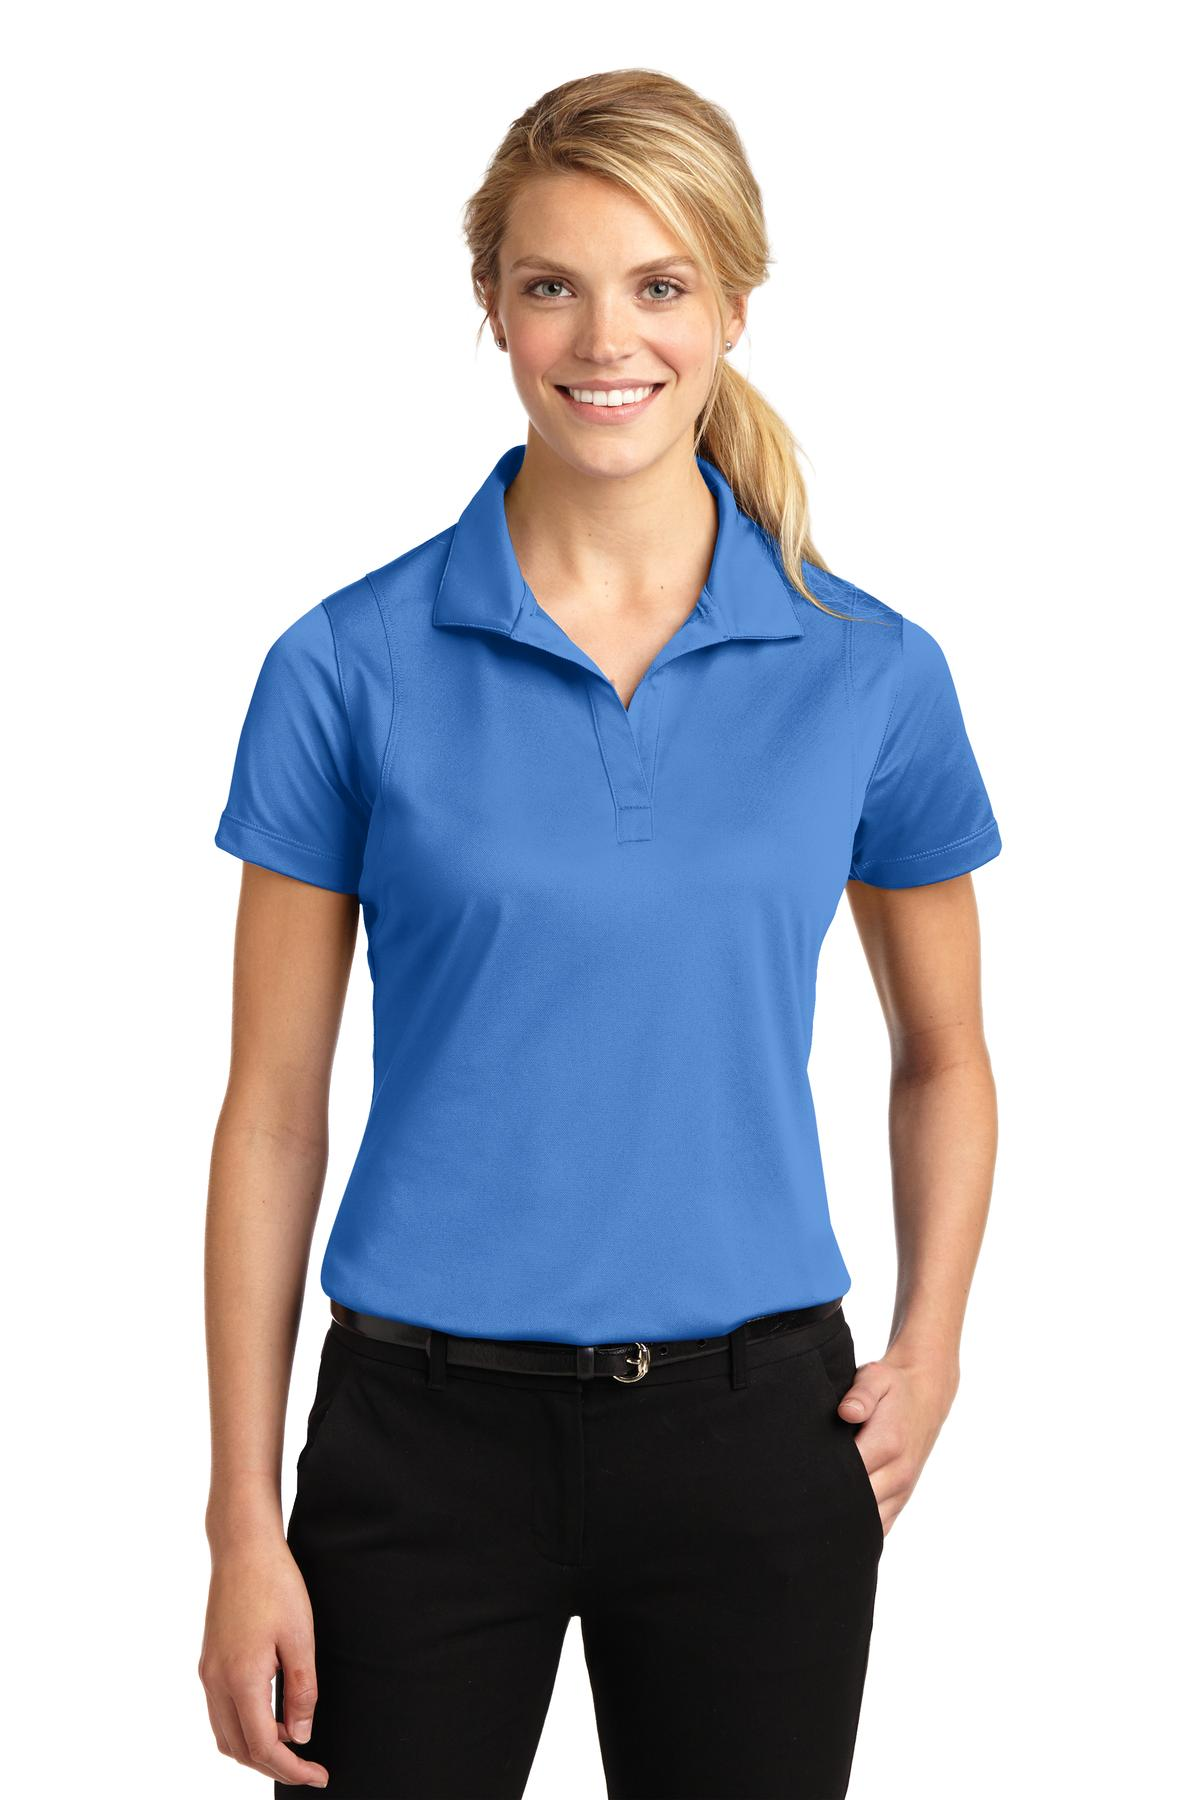 Sport-Tek ®  Ladies Micropique Sport-Wick ®  Polo. LST650 - Blue Lake